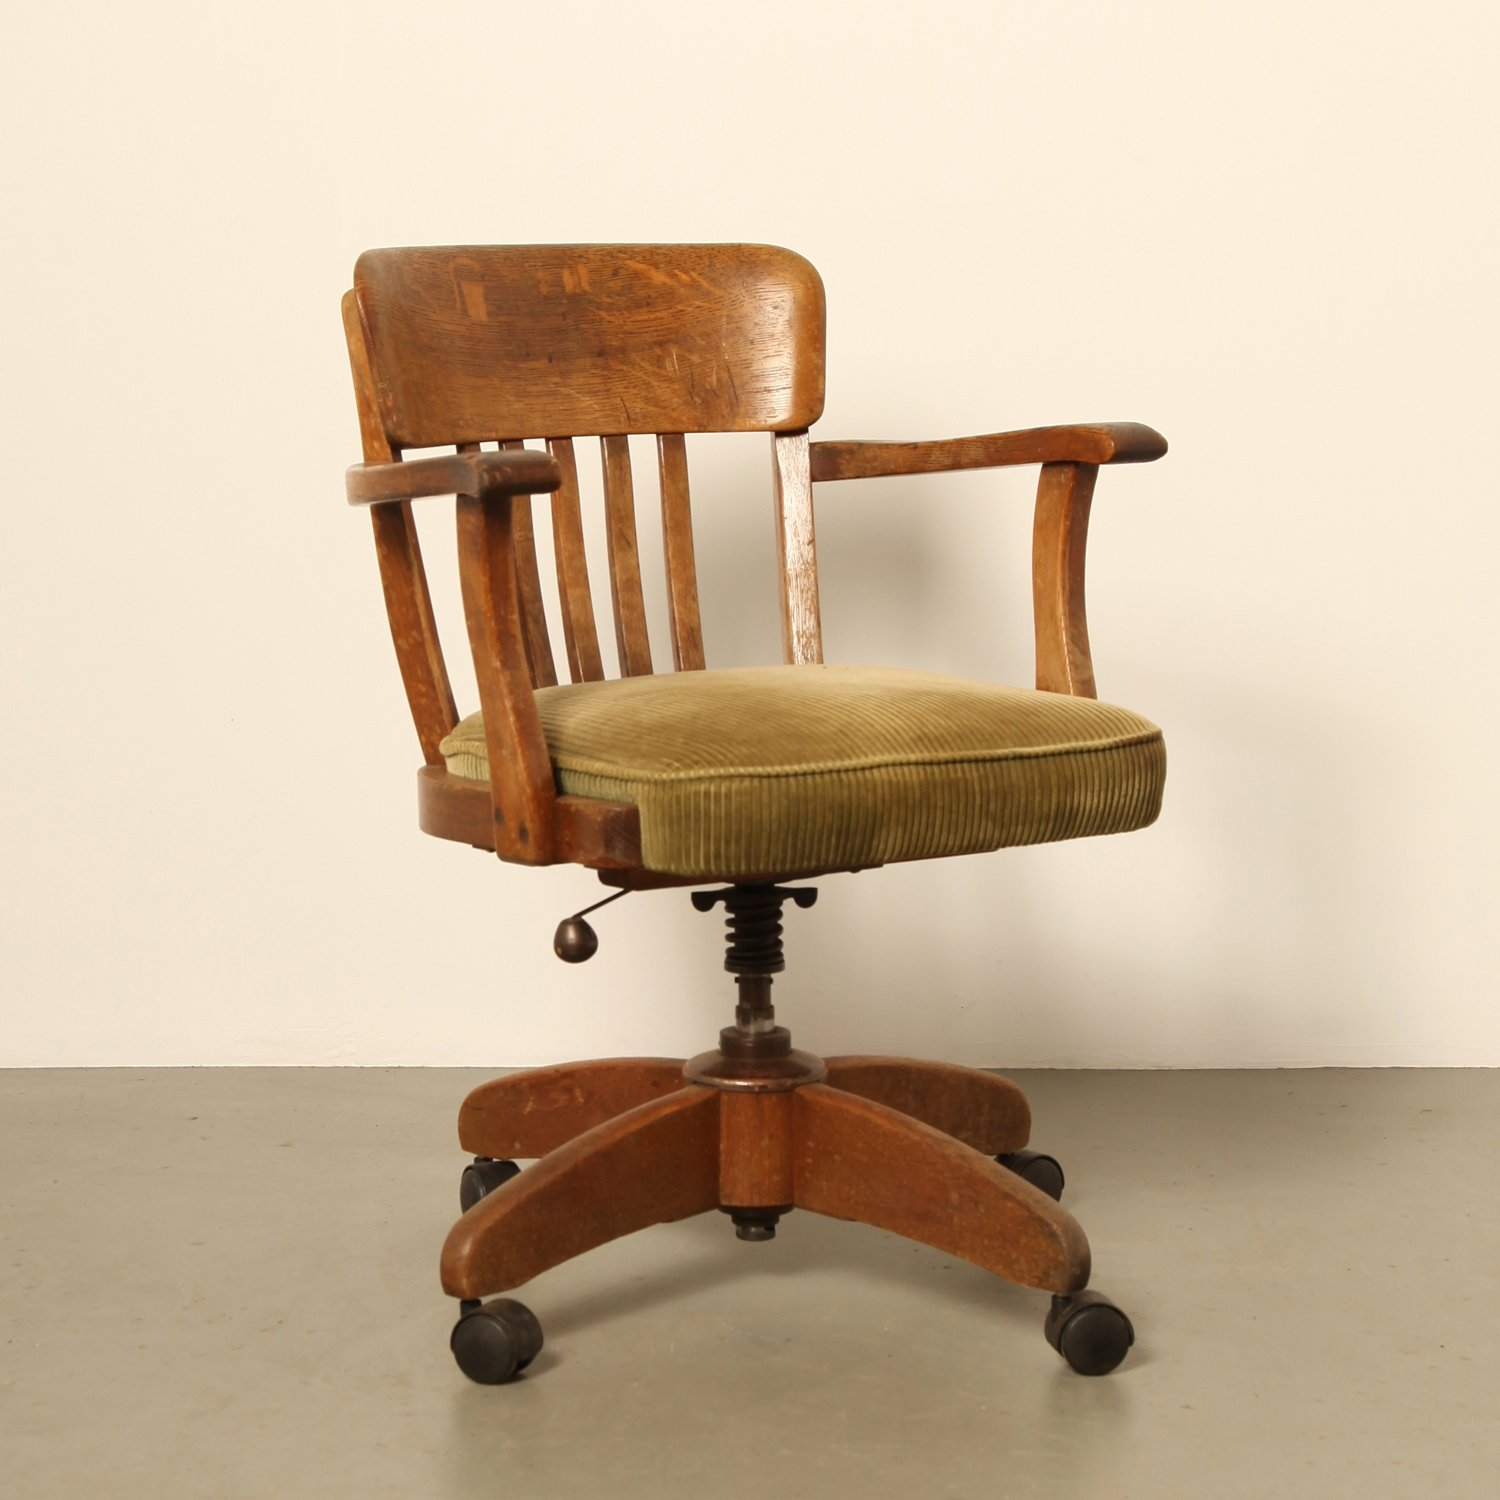 Vintage office chair 1920s  68146